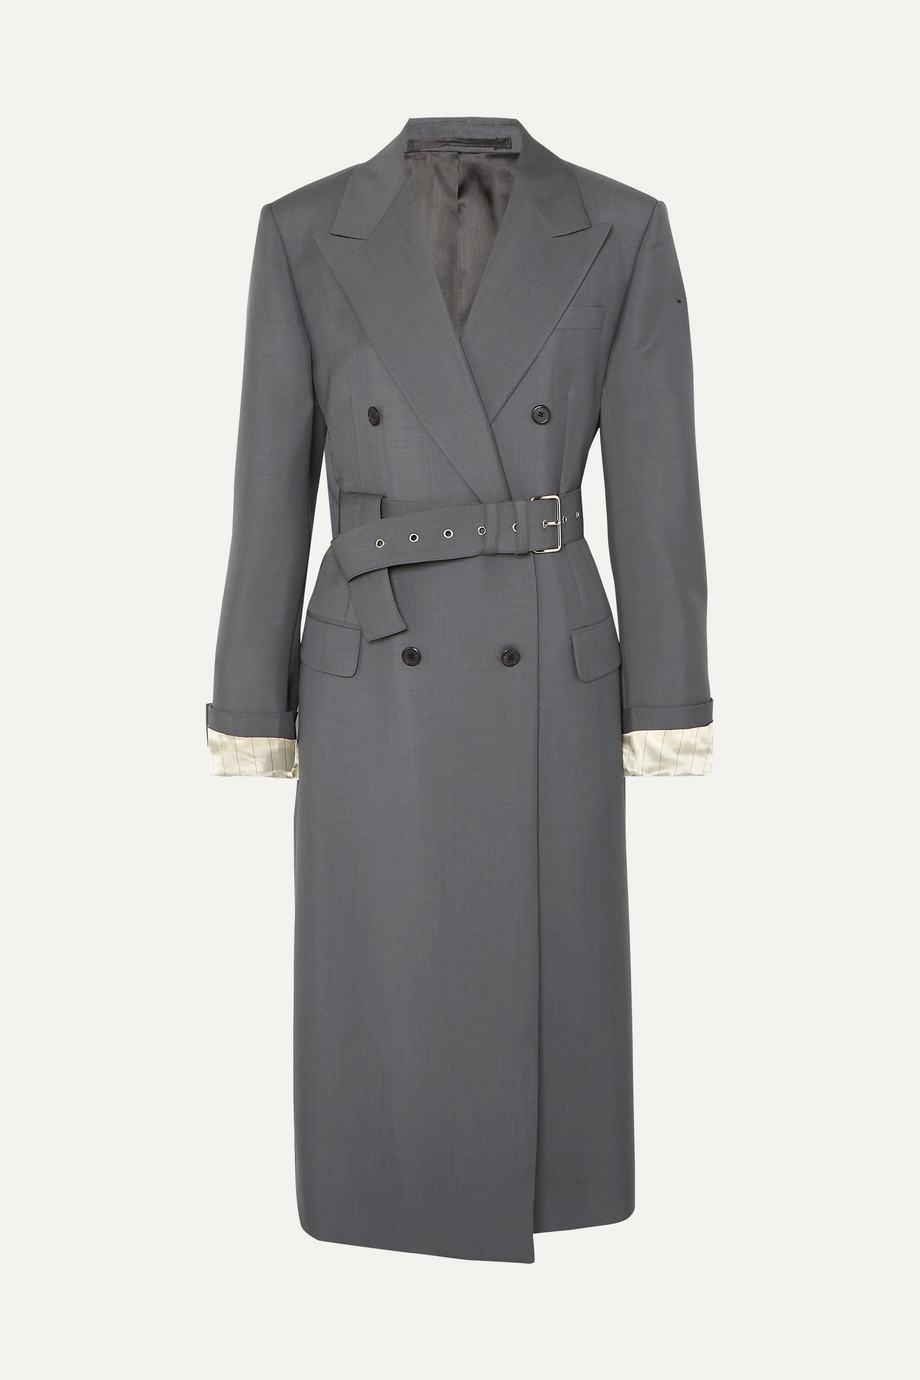 Prada Belted mohair and wool-blend coat